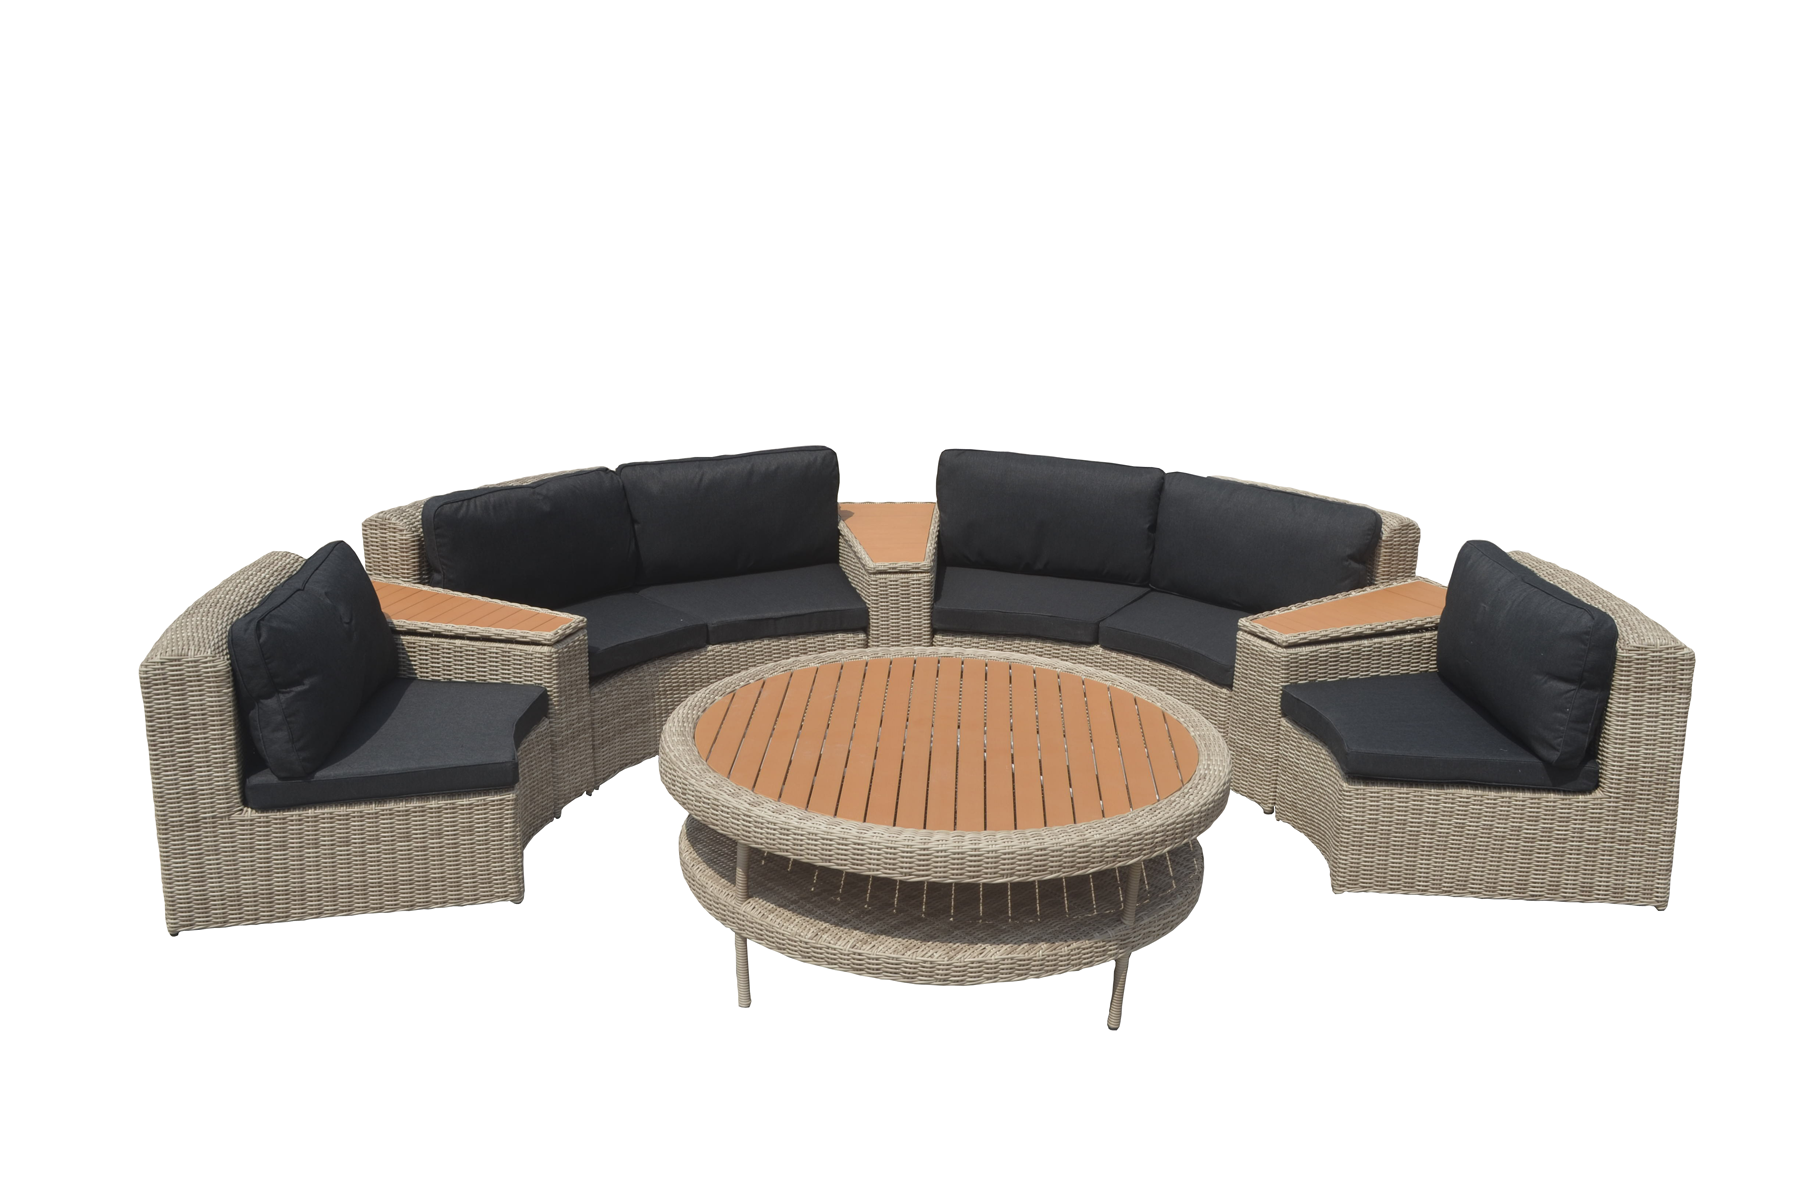 Hoekbank Tuin Wicker Loungeset Zwart Wicker